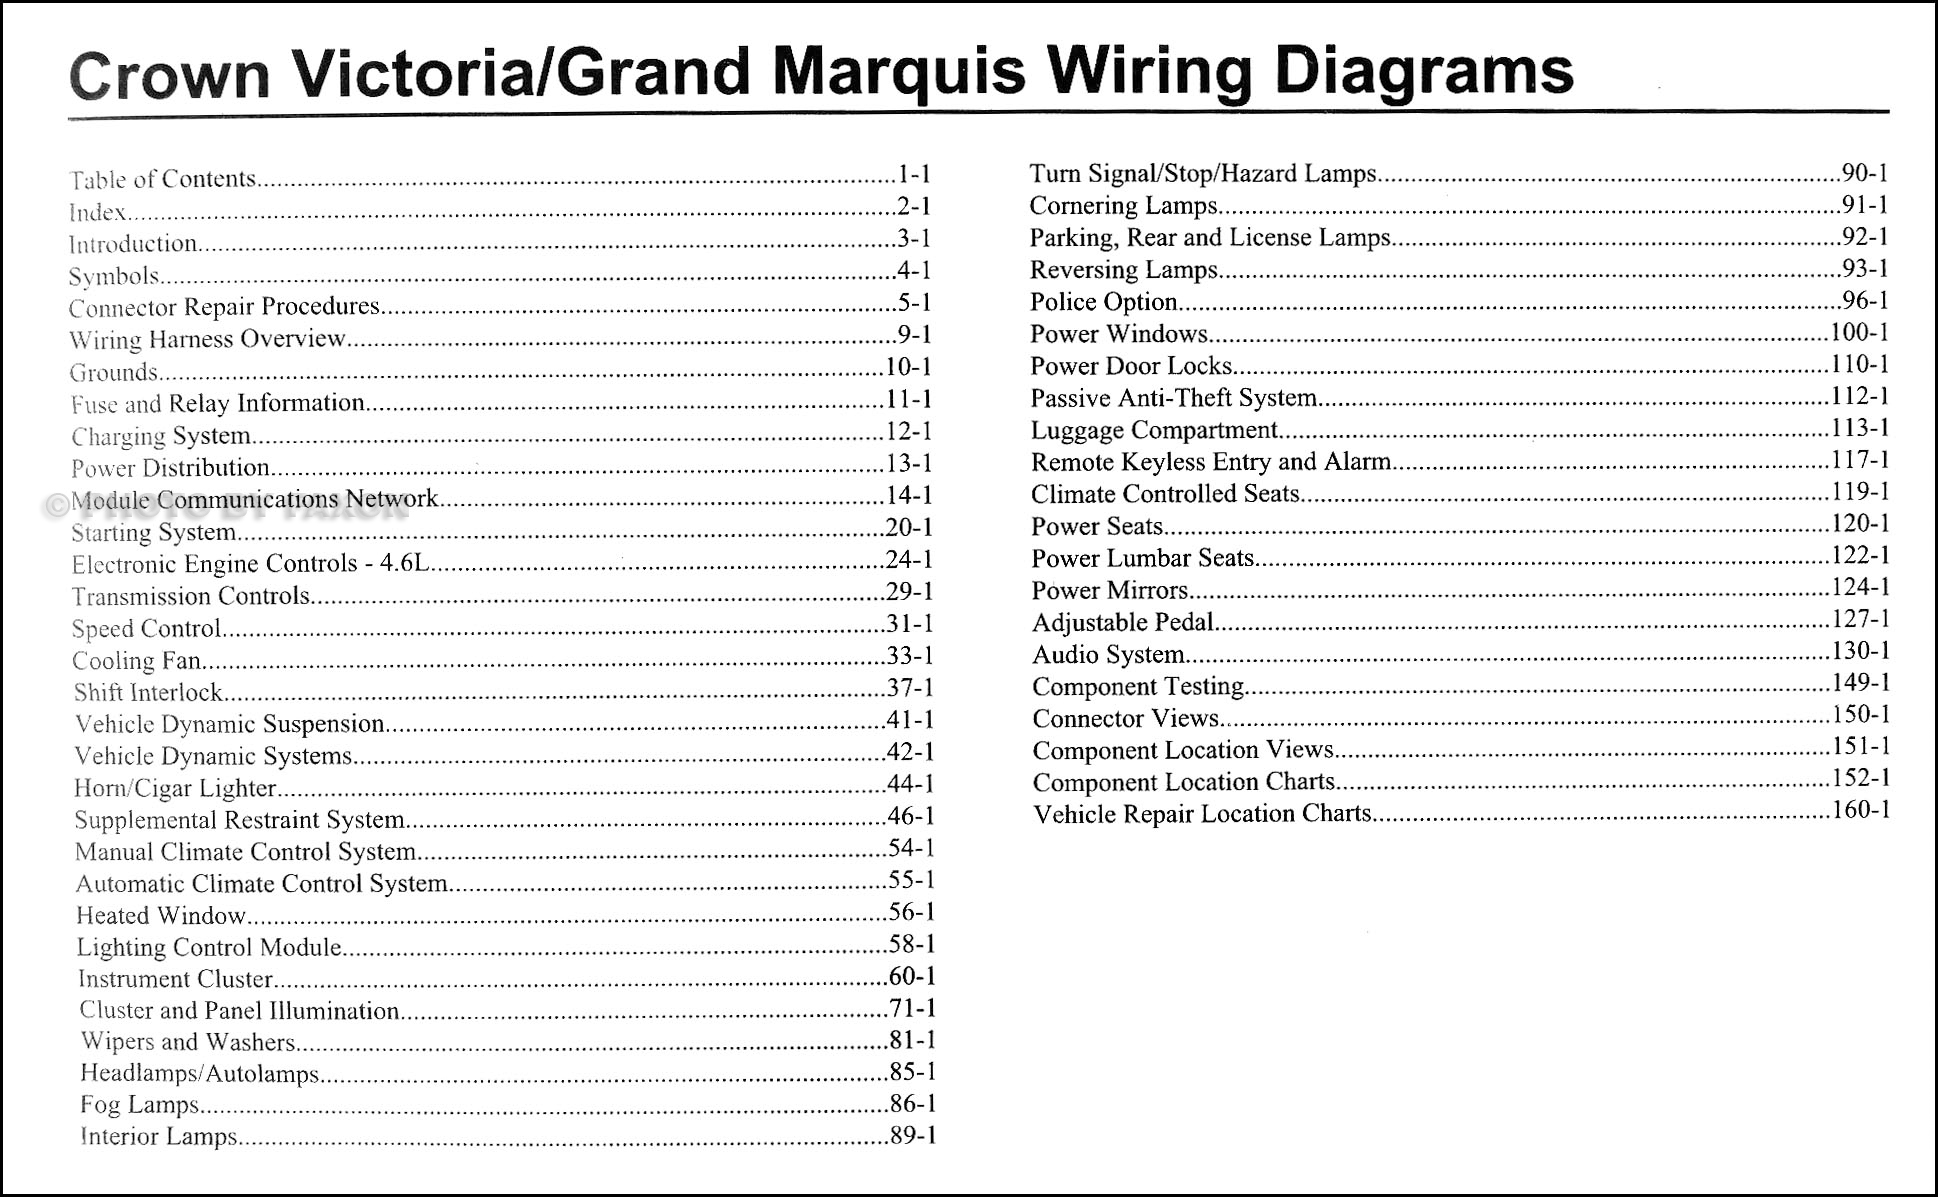 93 Ford Crown Victoria Wiring Diagram Library 2007 Fuse Box 2009 Grand Marquis Original Manual Table Of Contents